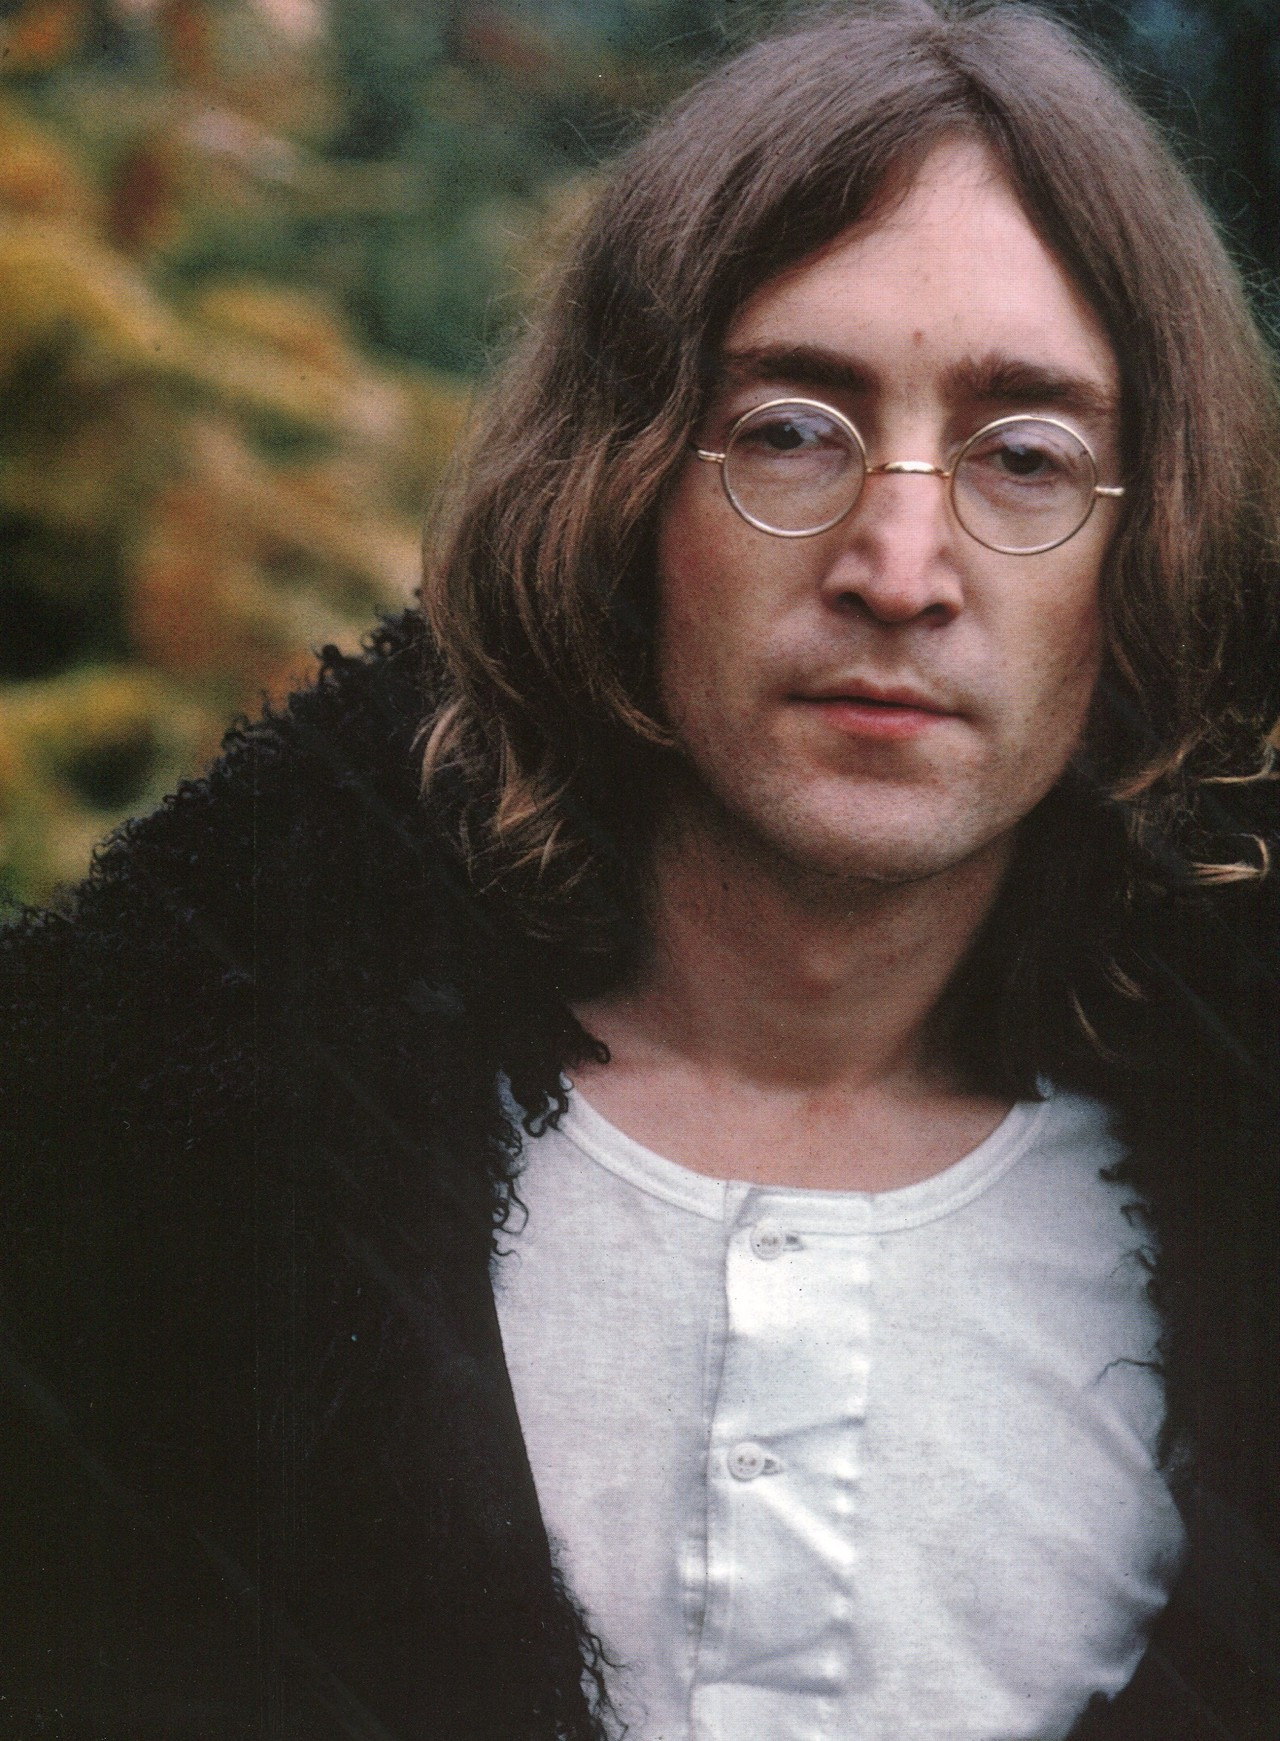 John Lennon New York New York 15243412 likes 37444 talking about this Official Facebook page for musician author artist amp peace activist John